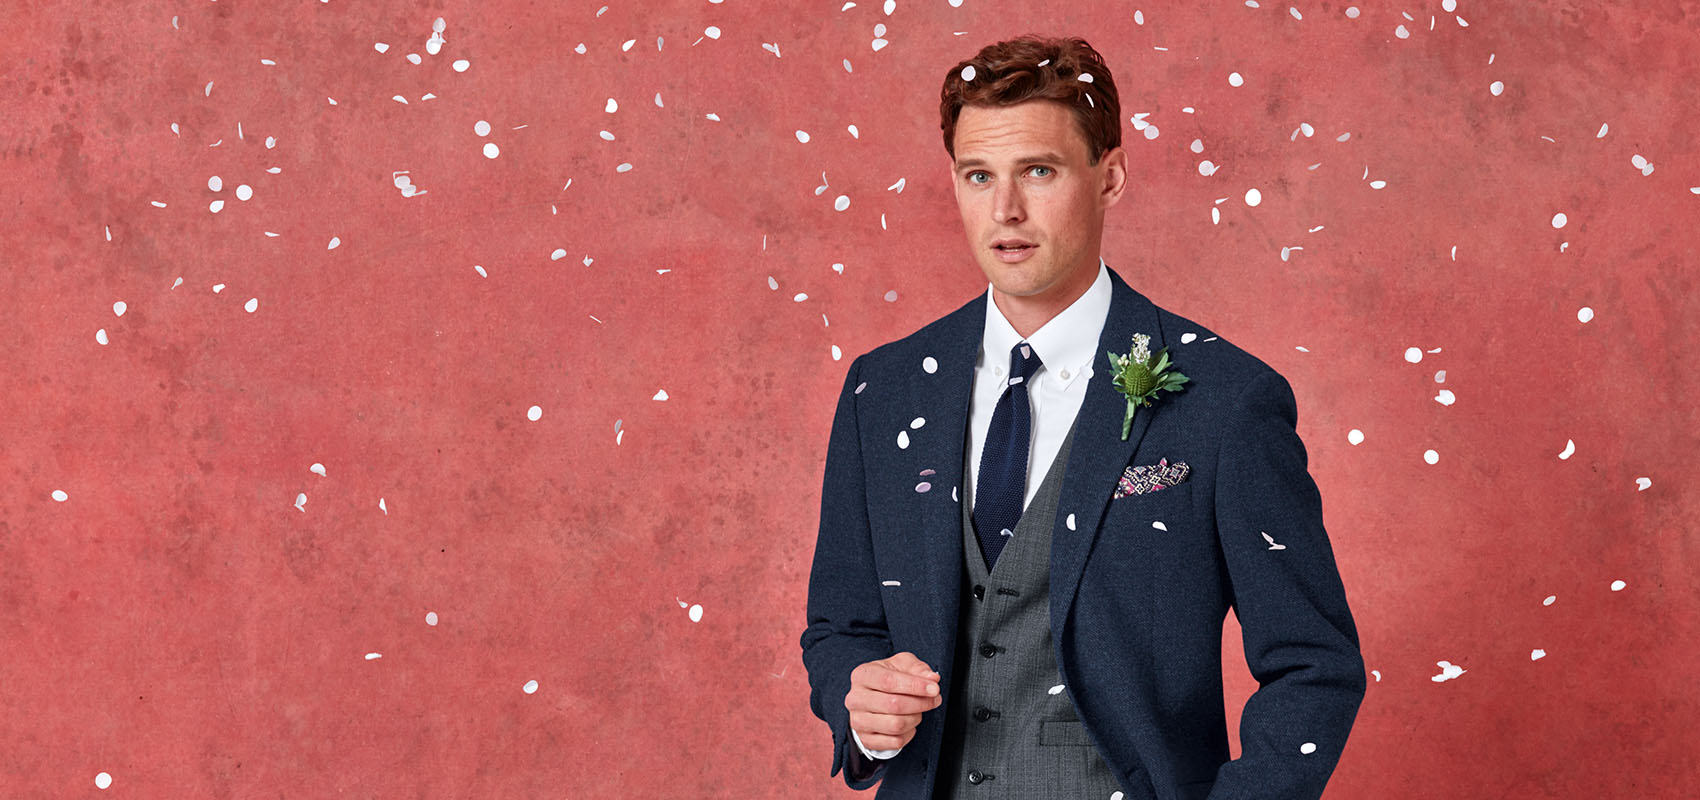 Charles Tyrwhitt Wedding wardrobe